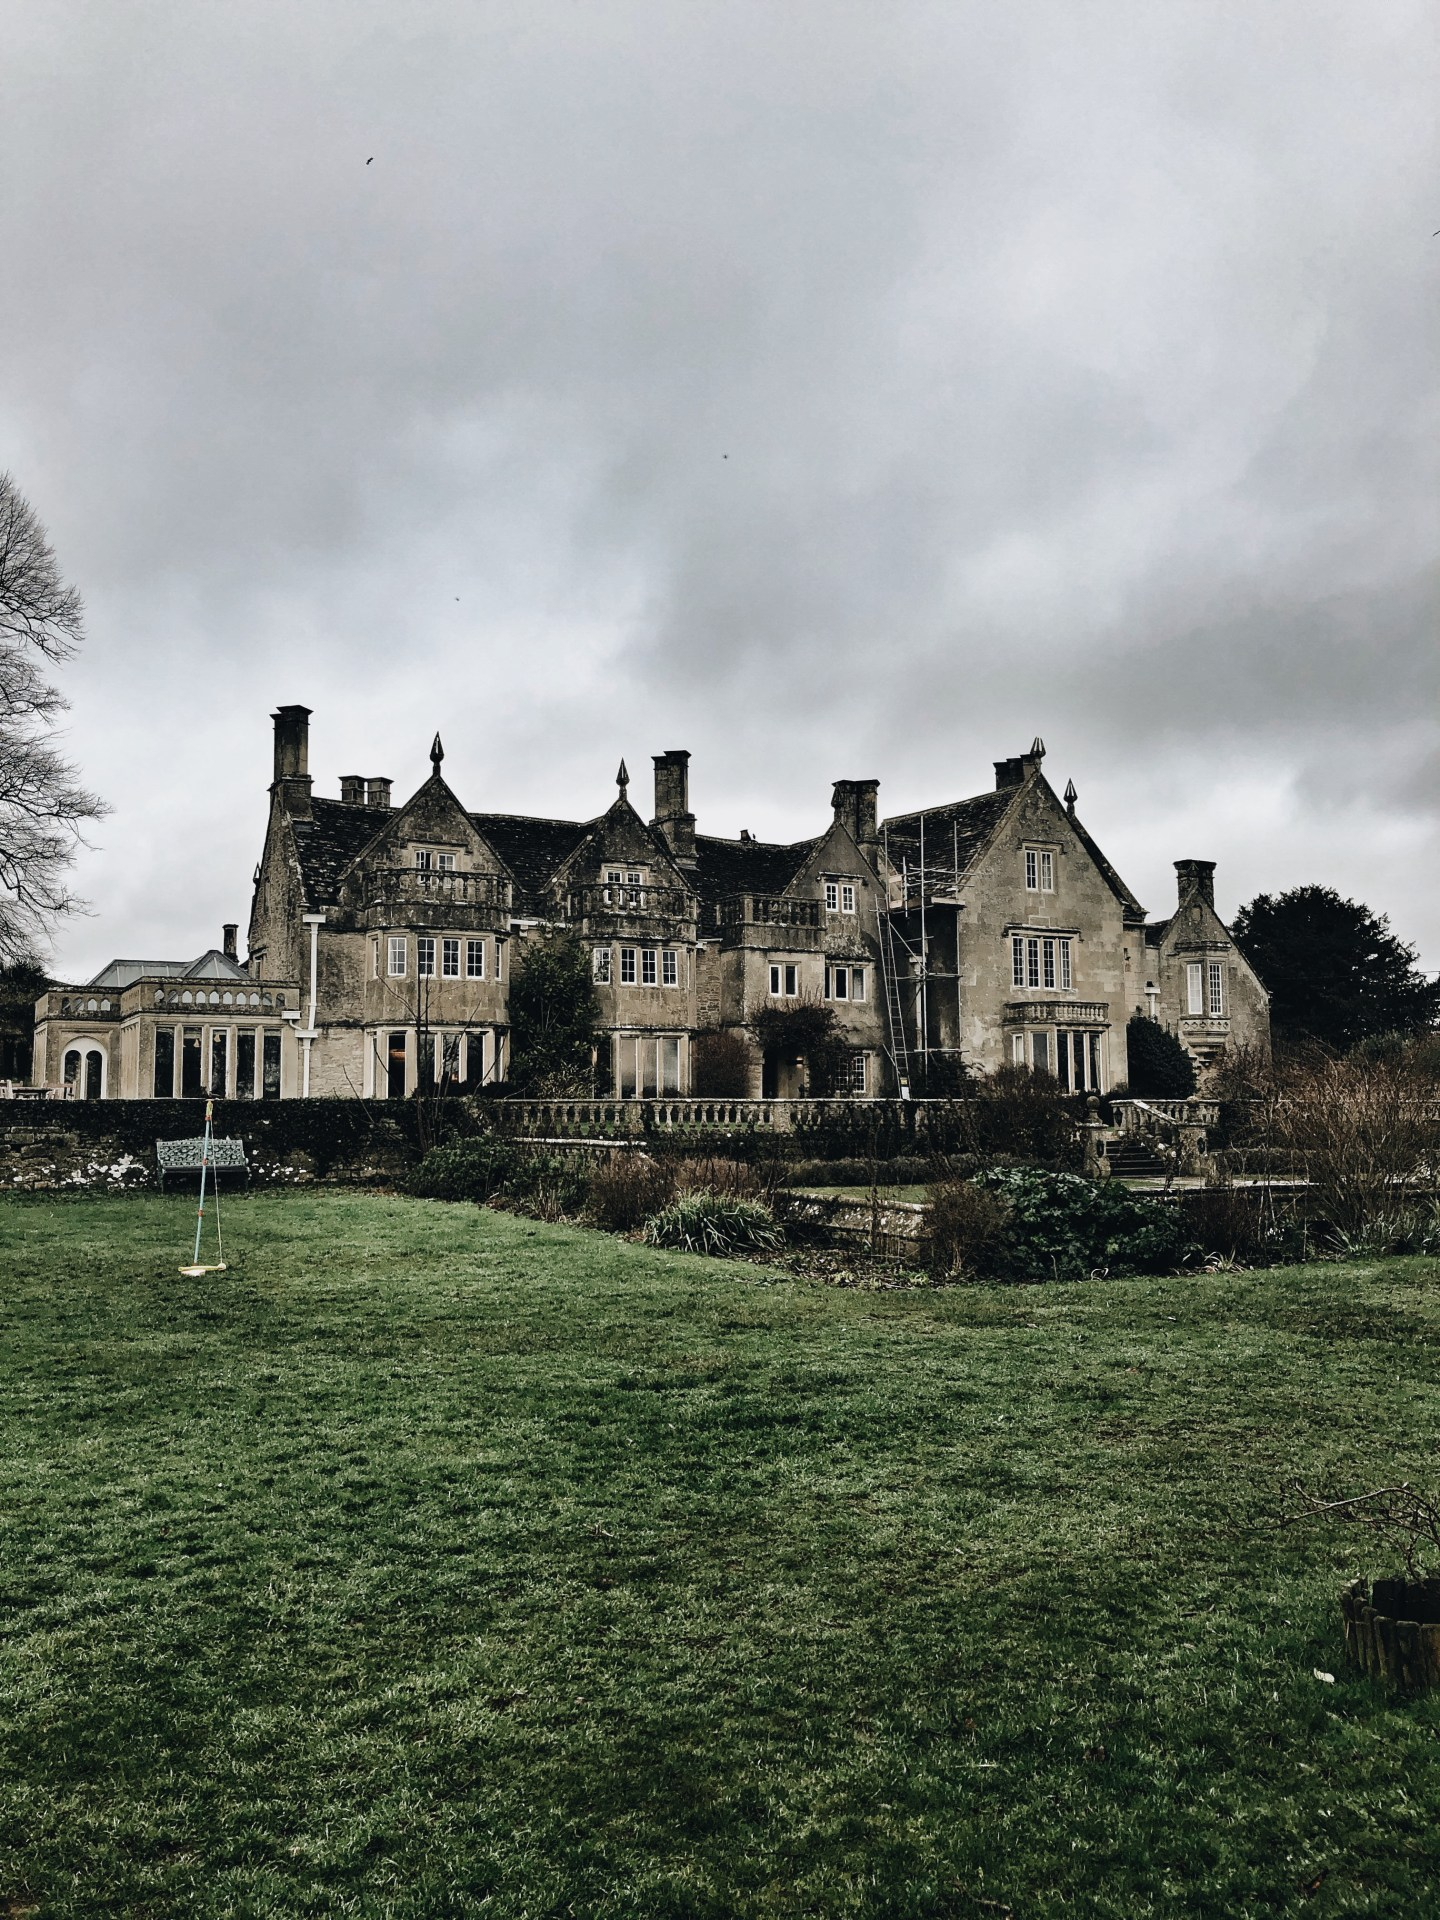 Our family stay at Woolley Grange Hotel